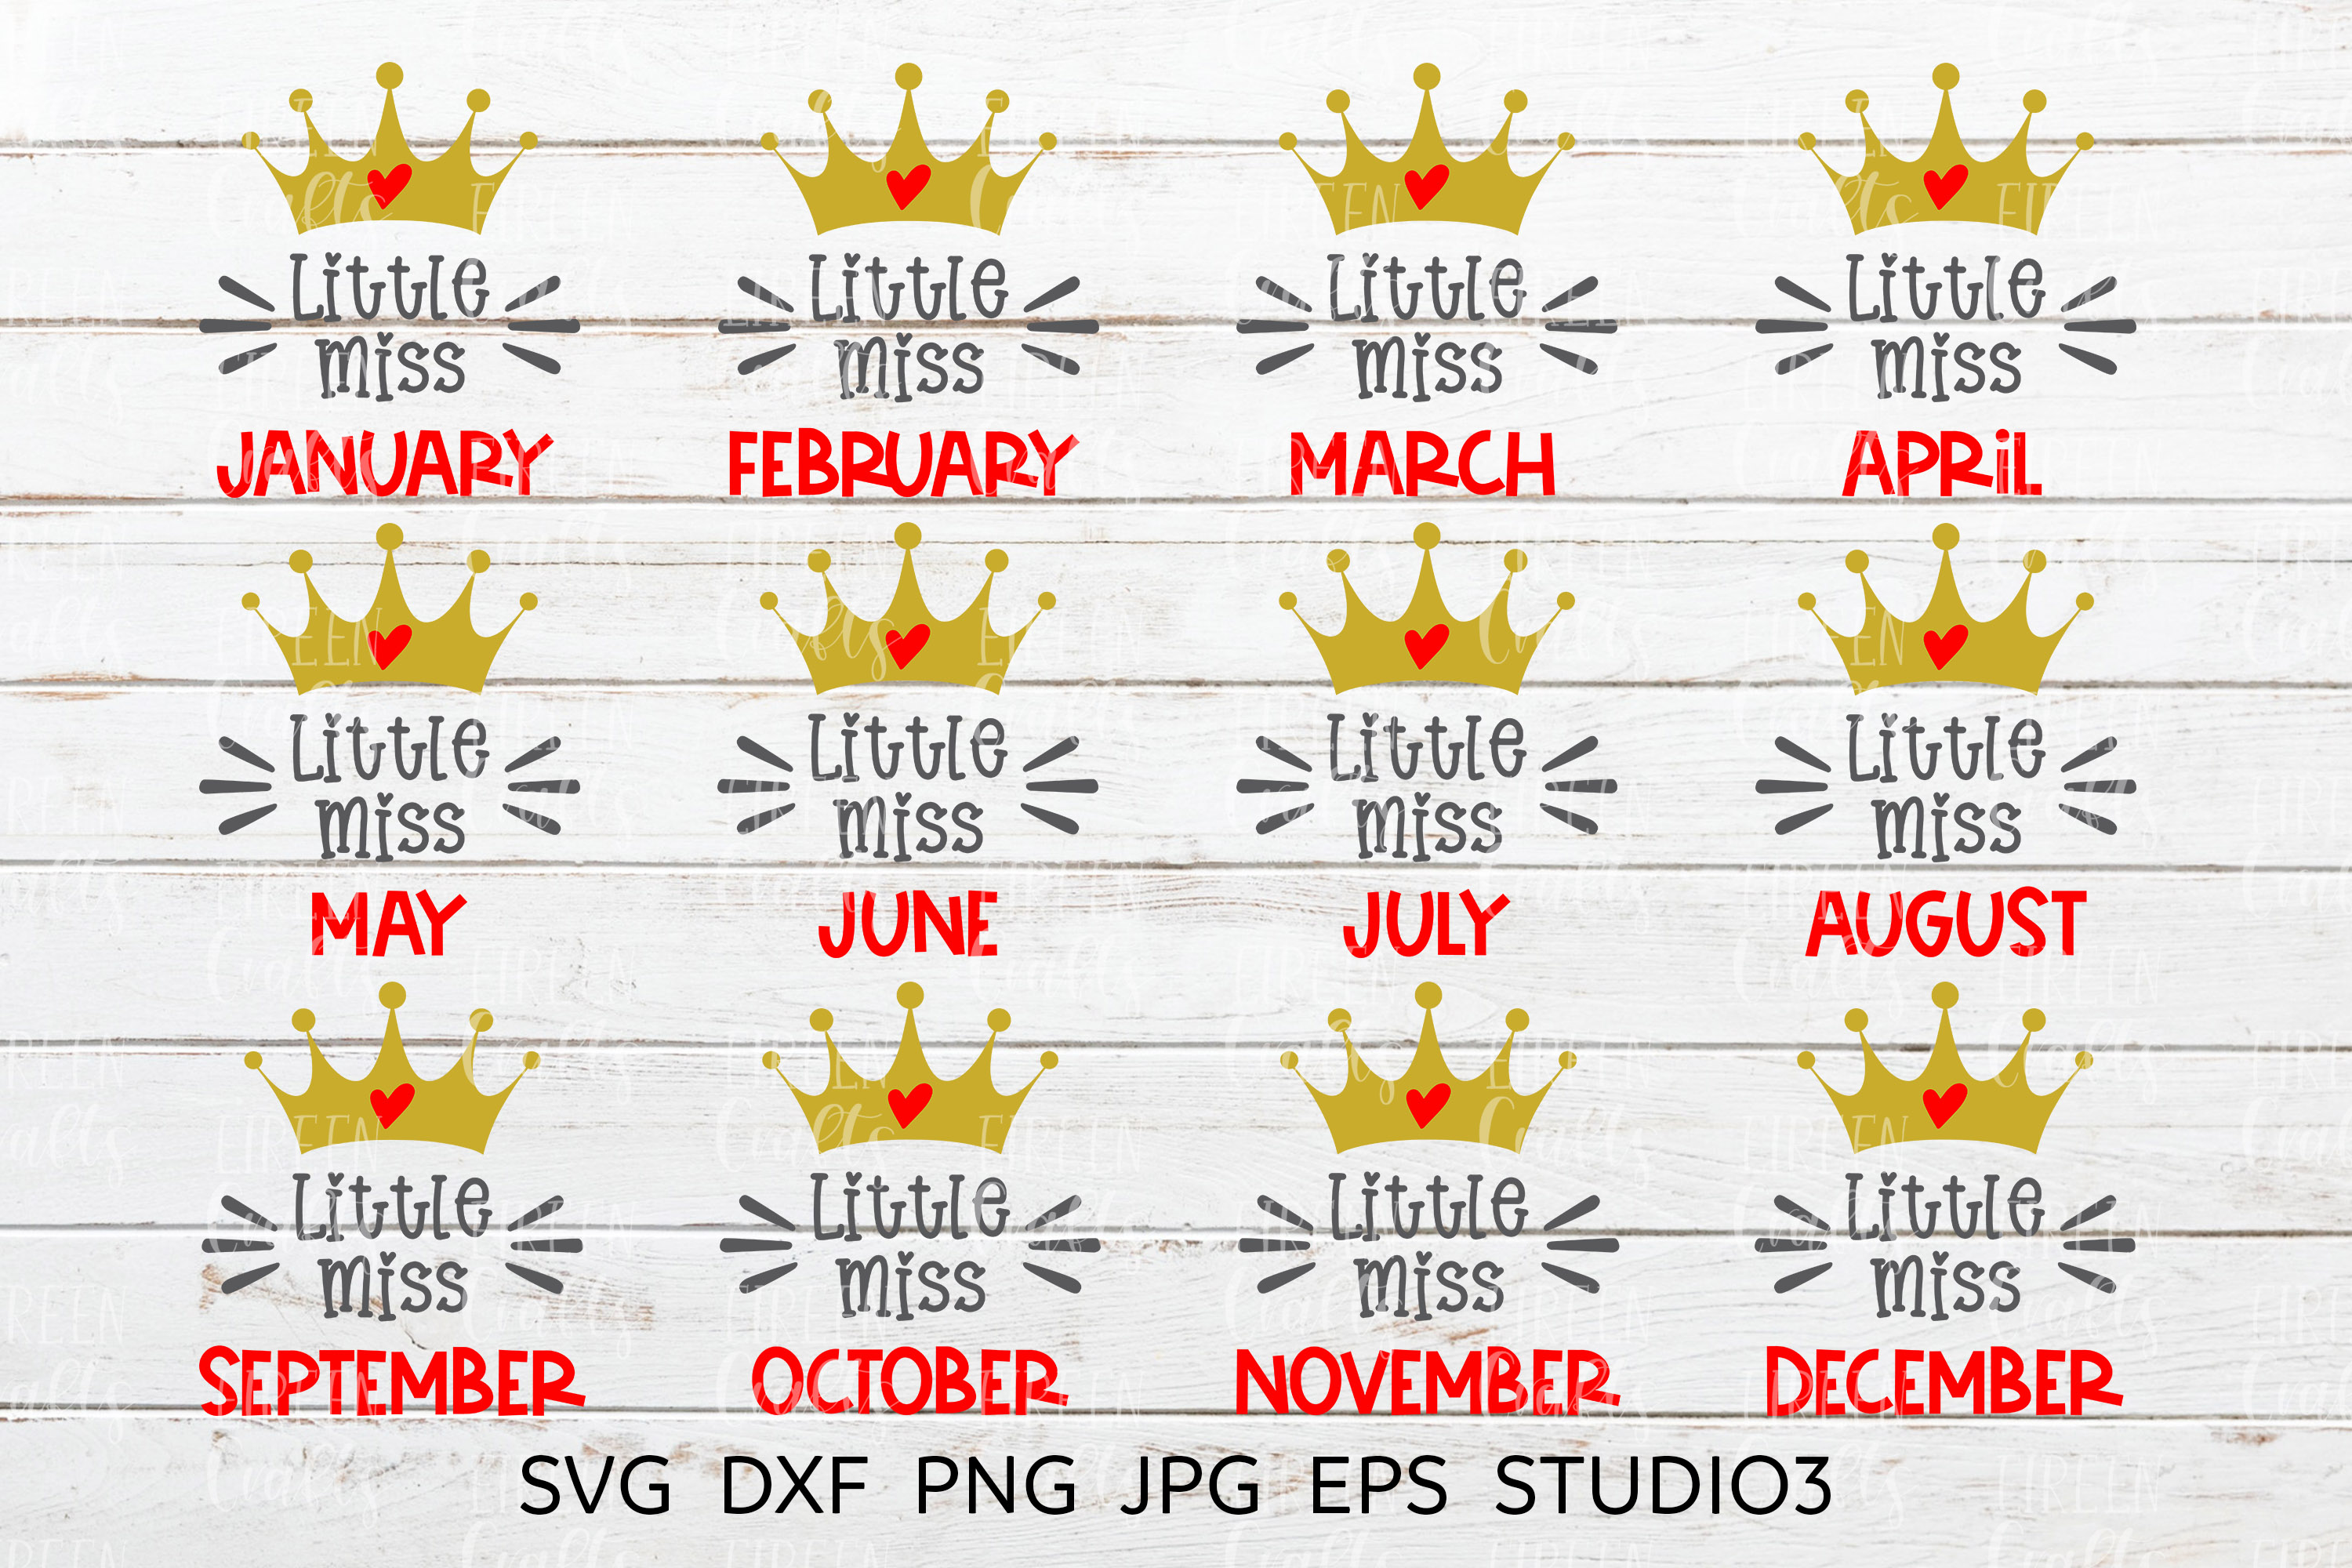 Little Miss January to Little Miss December SVG bundle example image 1